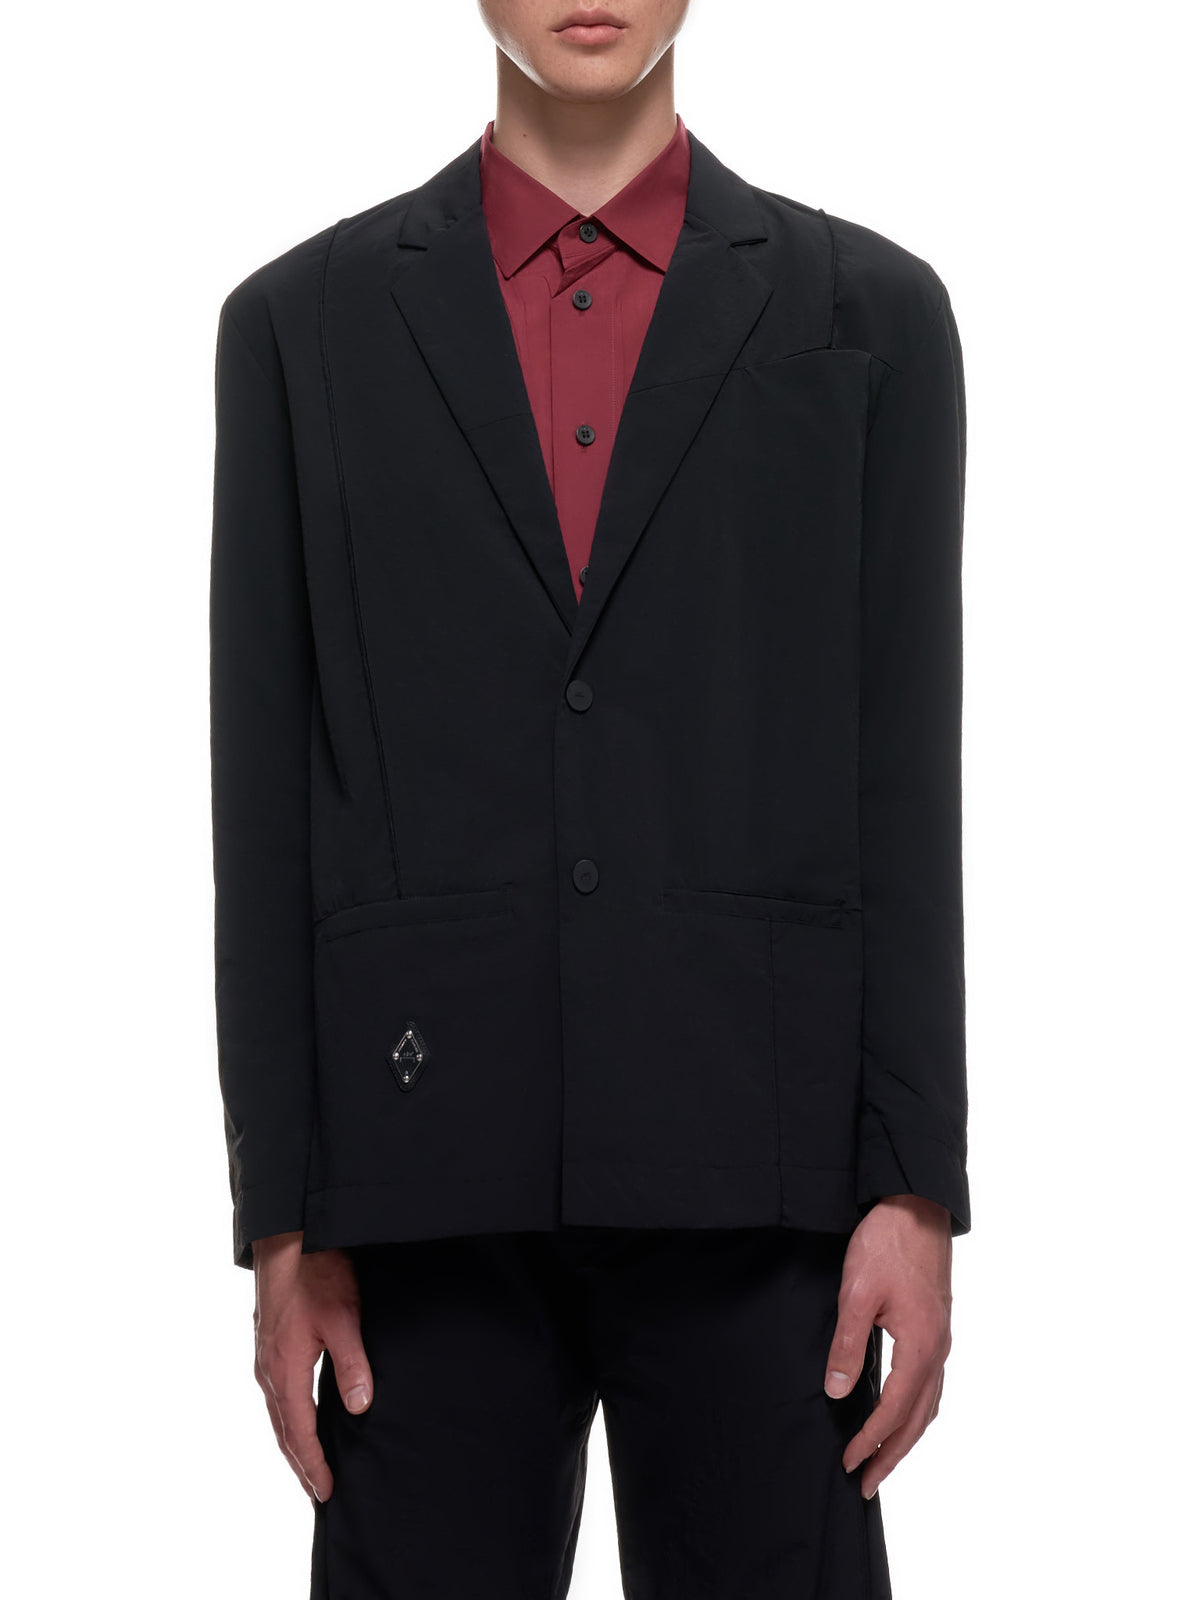 Nylon Suit Jacket (MH009-BLACK)